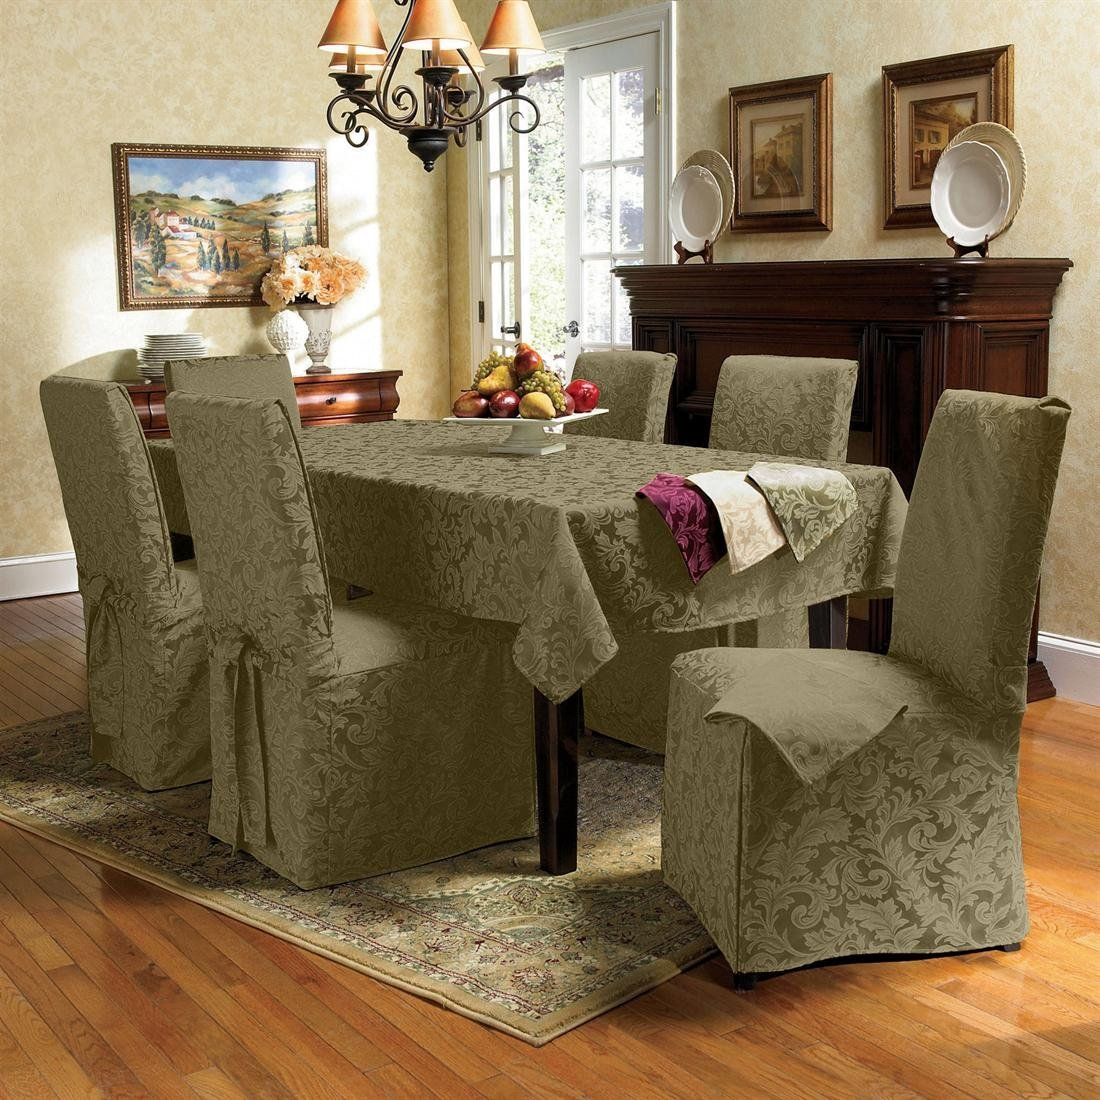 Slipcovers For Chairs Royals Courage Create Your Eating Space Extra Engaging With A Dining Room Chair Covers